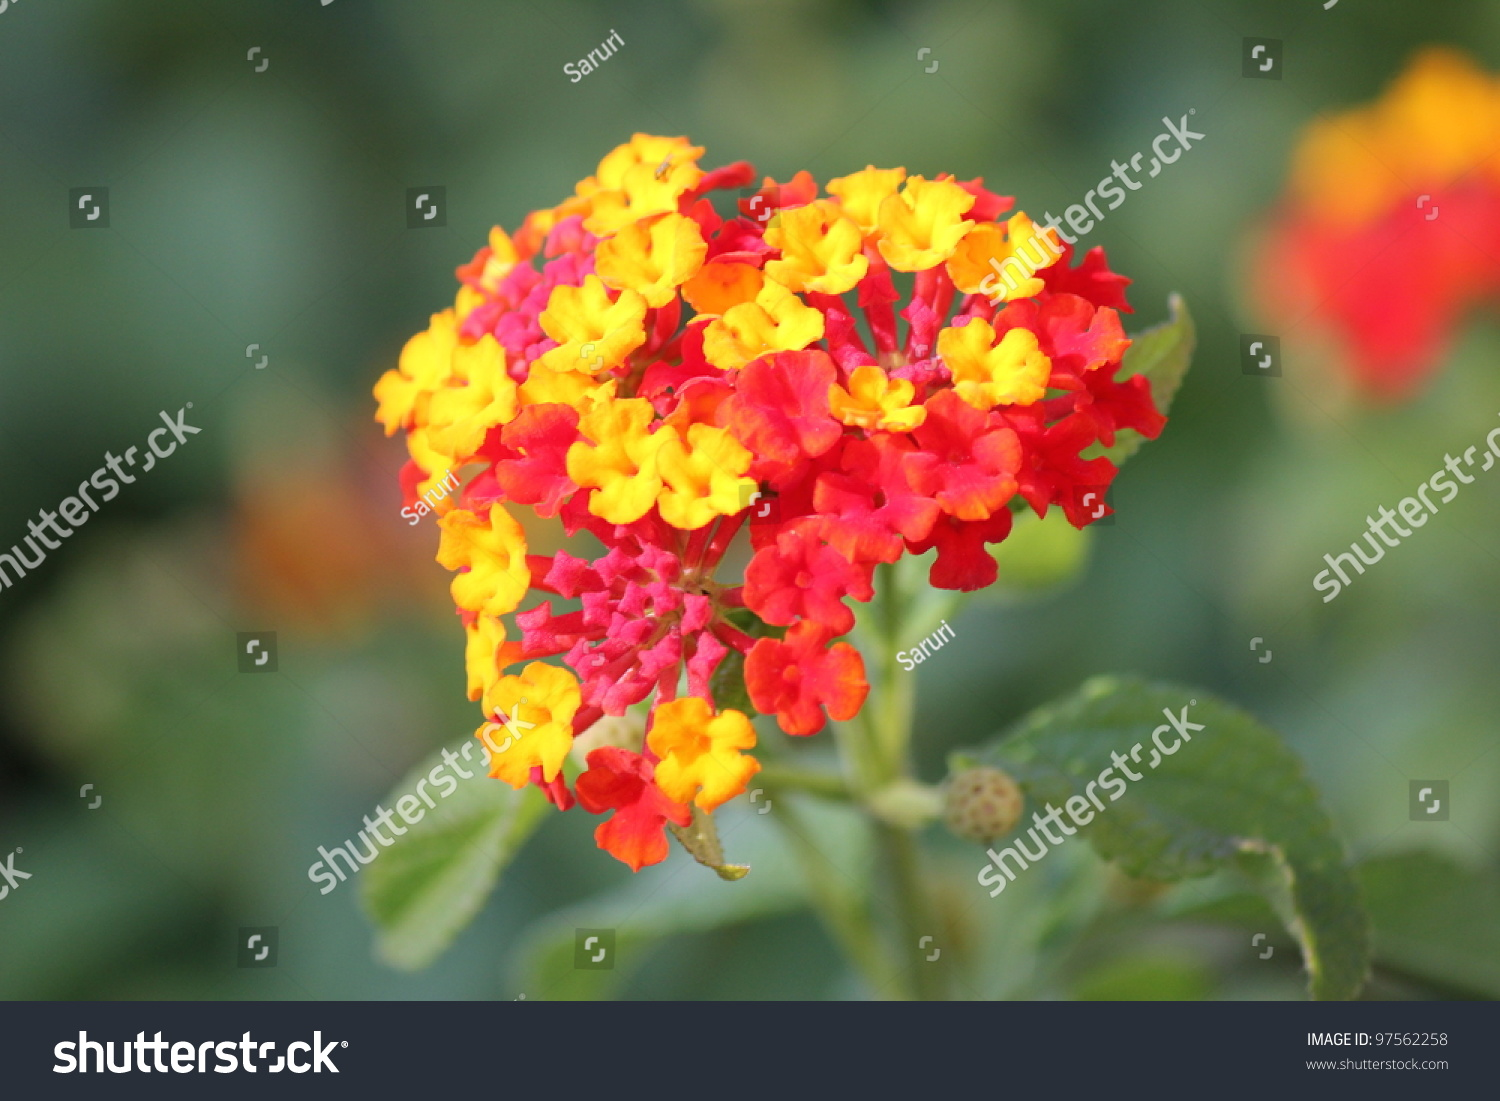 Yellow Red Flower Stock Photo Edit Now 97562258 Shutterstock